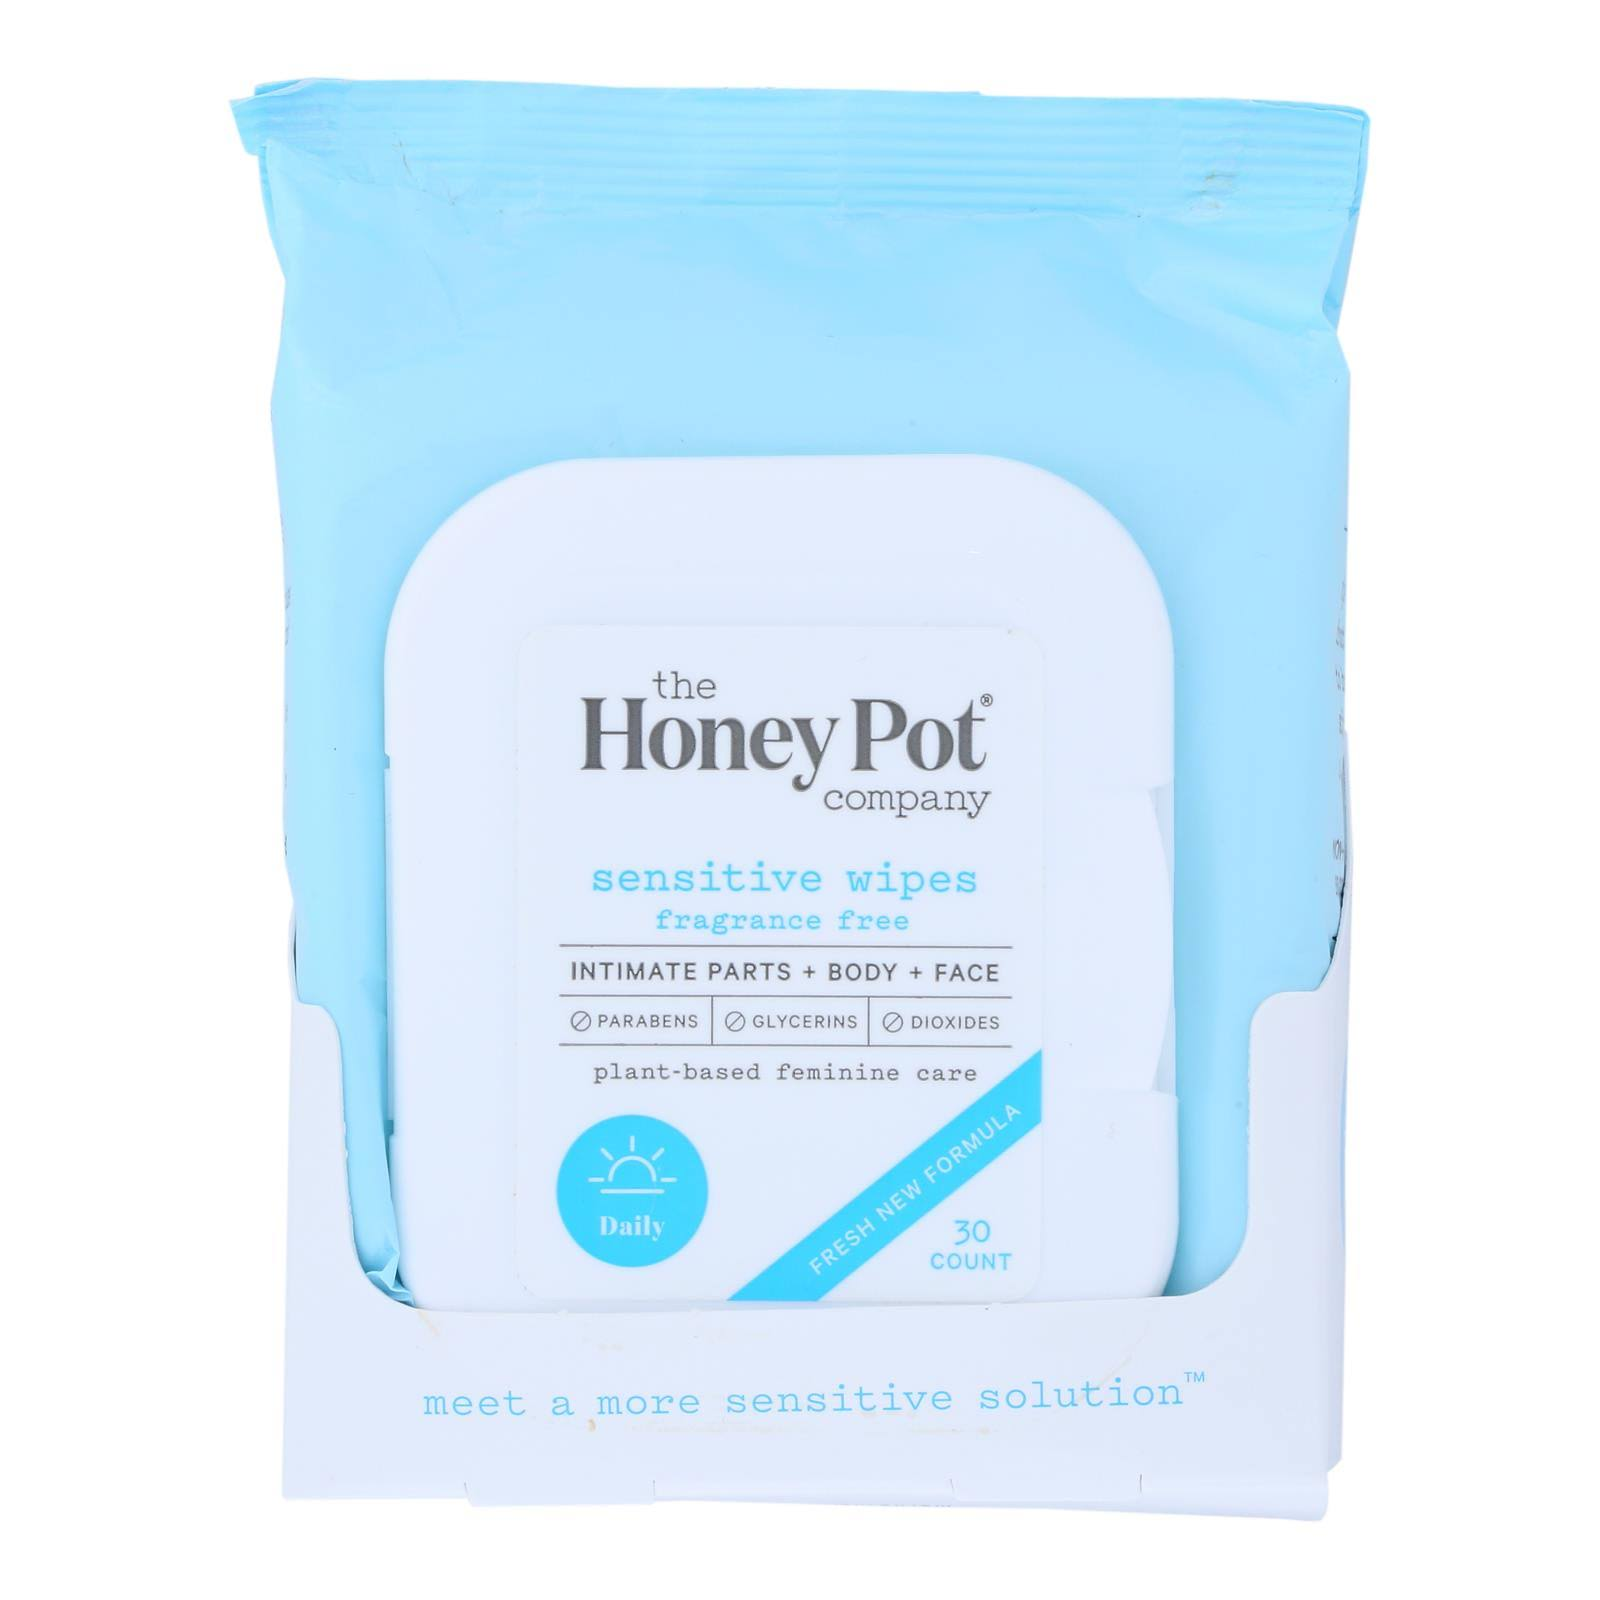 The Honey Pot Sensitive Intimate Wipes - Blue, 30 Wipes